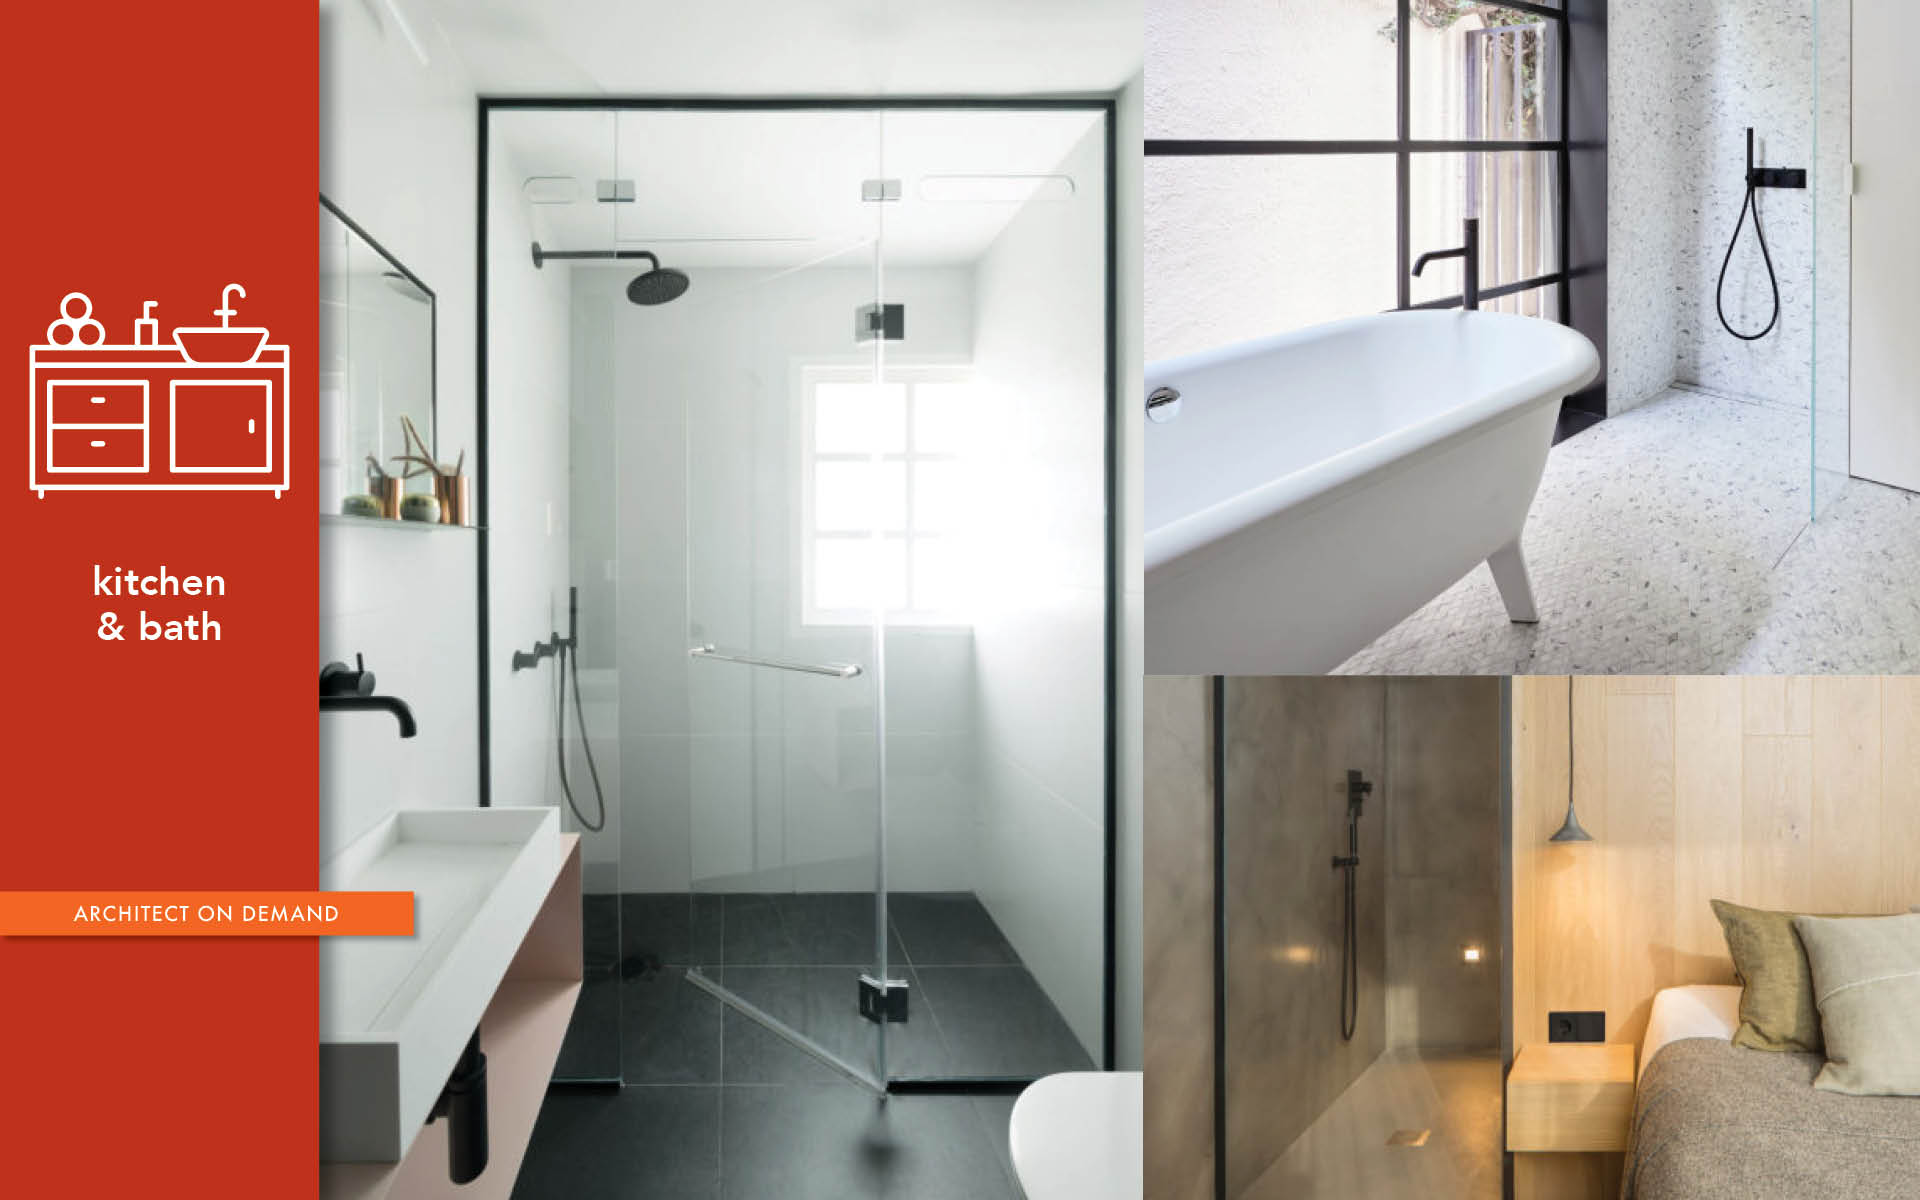 waterproof modular shower system, architect-on-demand, advice-without-strings